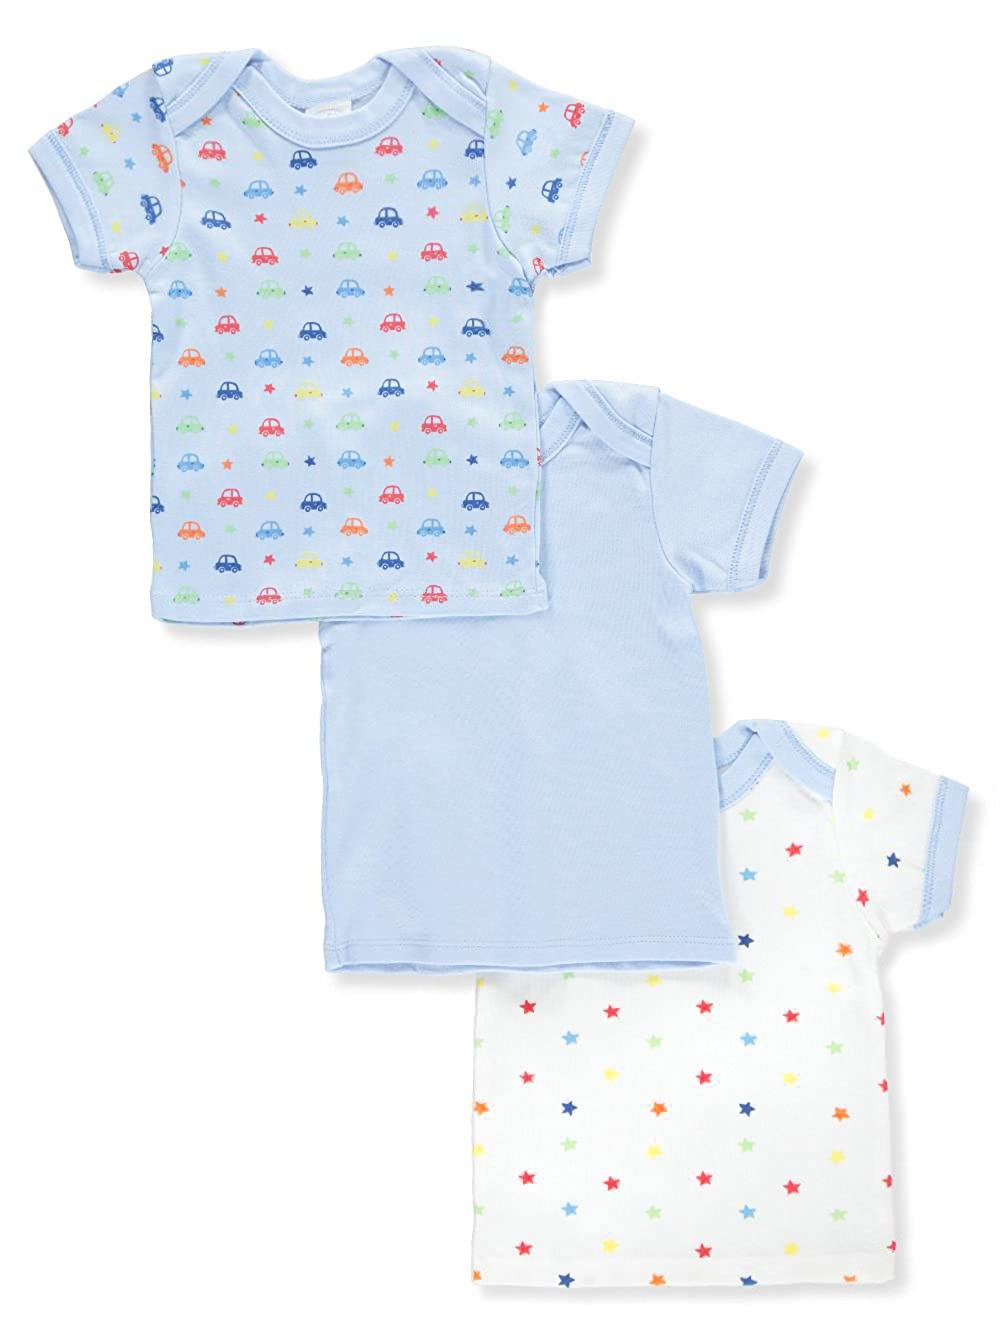 Big Oshi Baby Boys' 3-Pack Lap Shoulder T-Shirts 12-18 Months